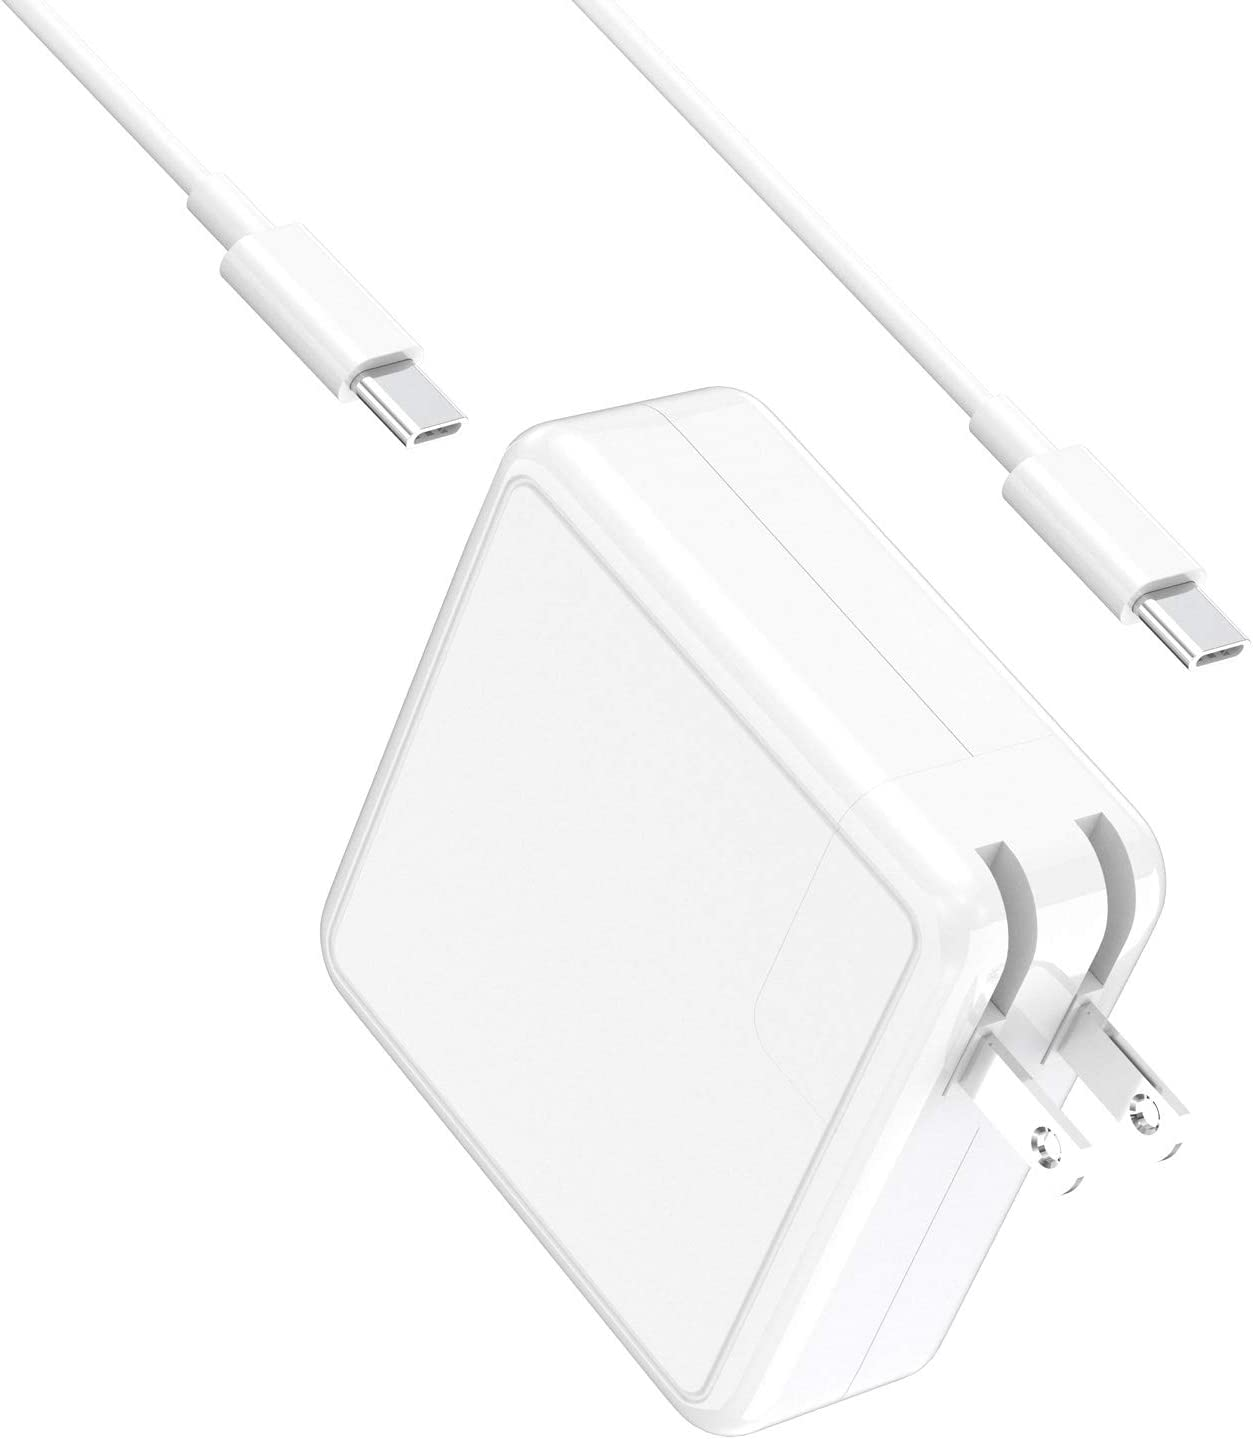 SIMPFUN Mac Book Pro Charger USB C 61W Compatible with 13/15 inch Mac Book Pro, Mac Book Air, Mac Book, iPad Pro, Replacement Charger for Xiaomi, Huawei Matebook and Other Type C Devices (2016-2020)